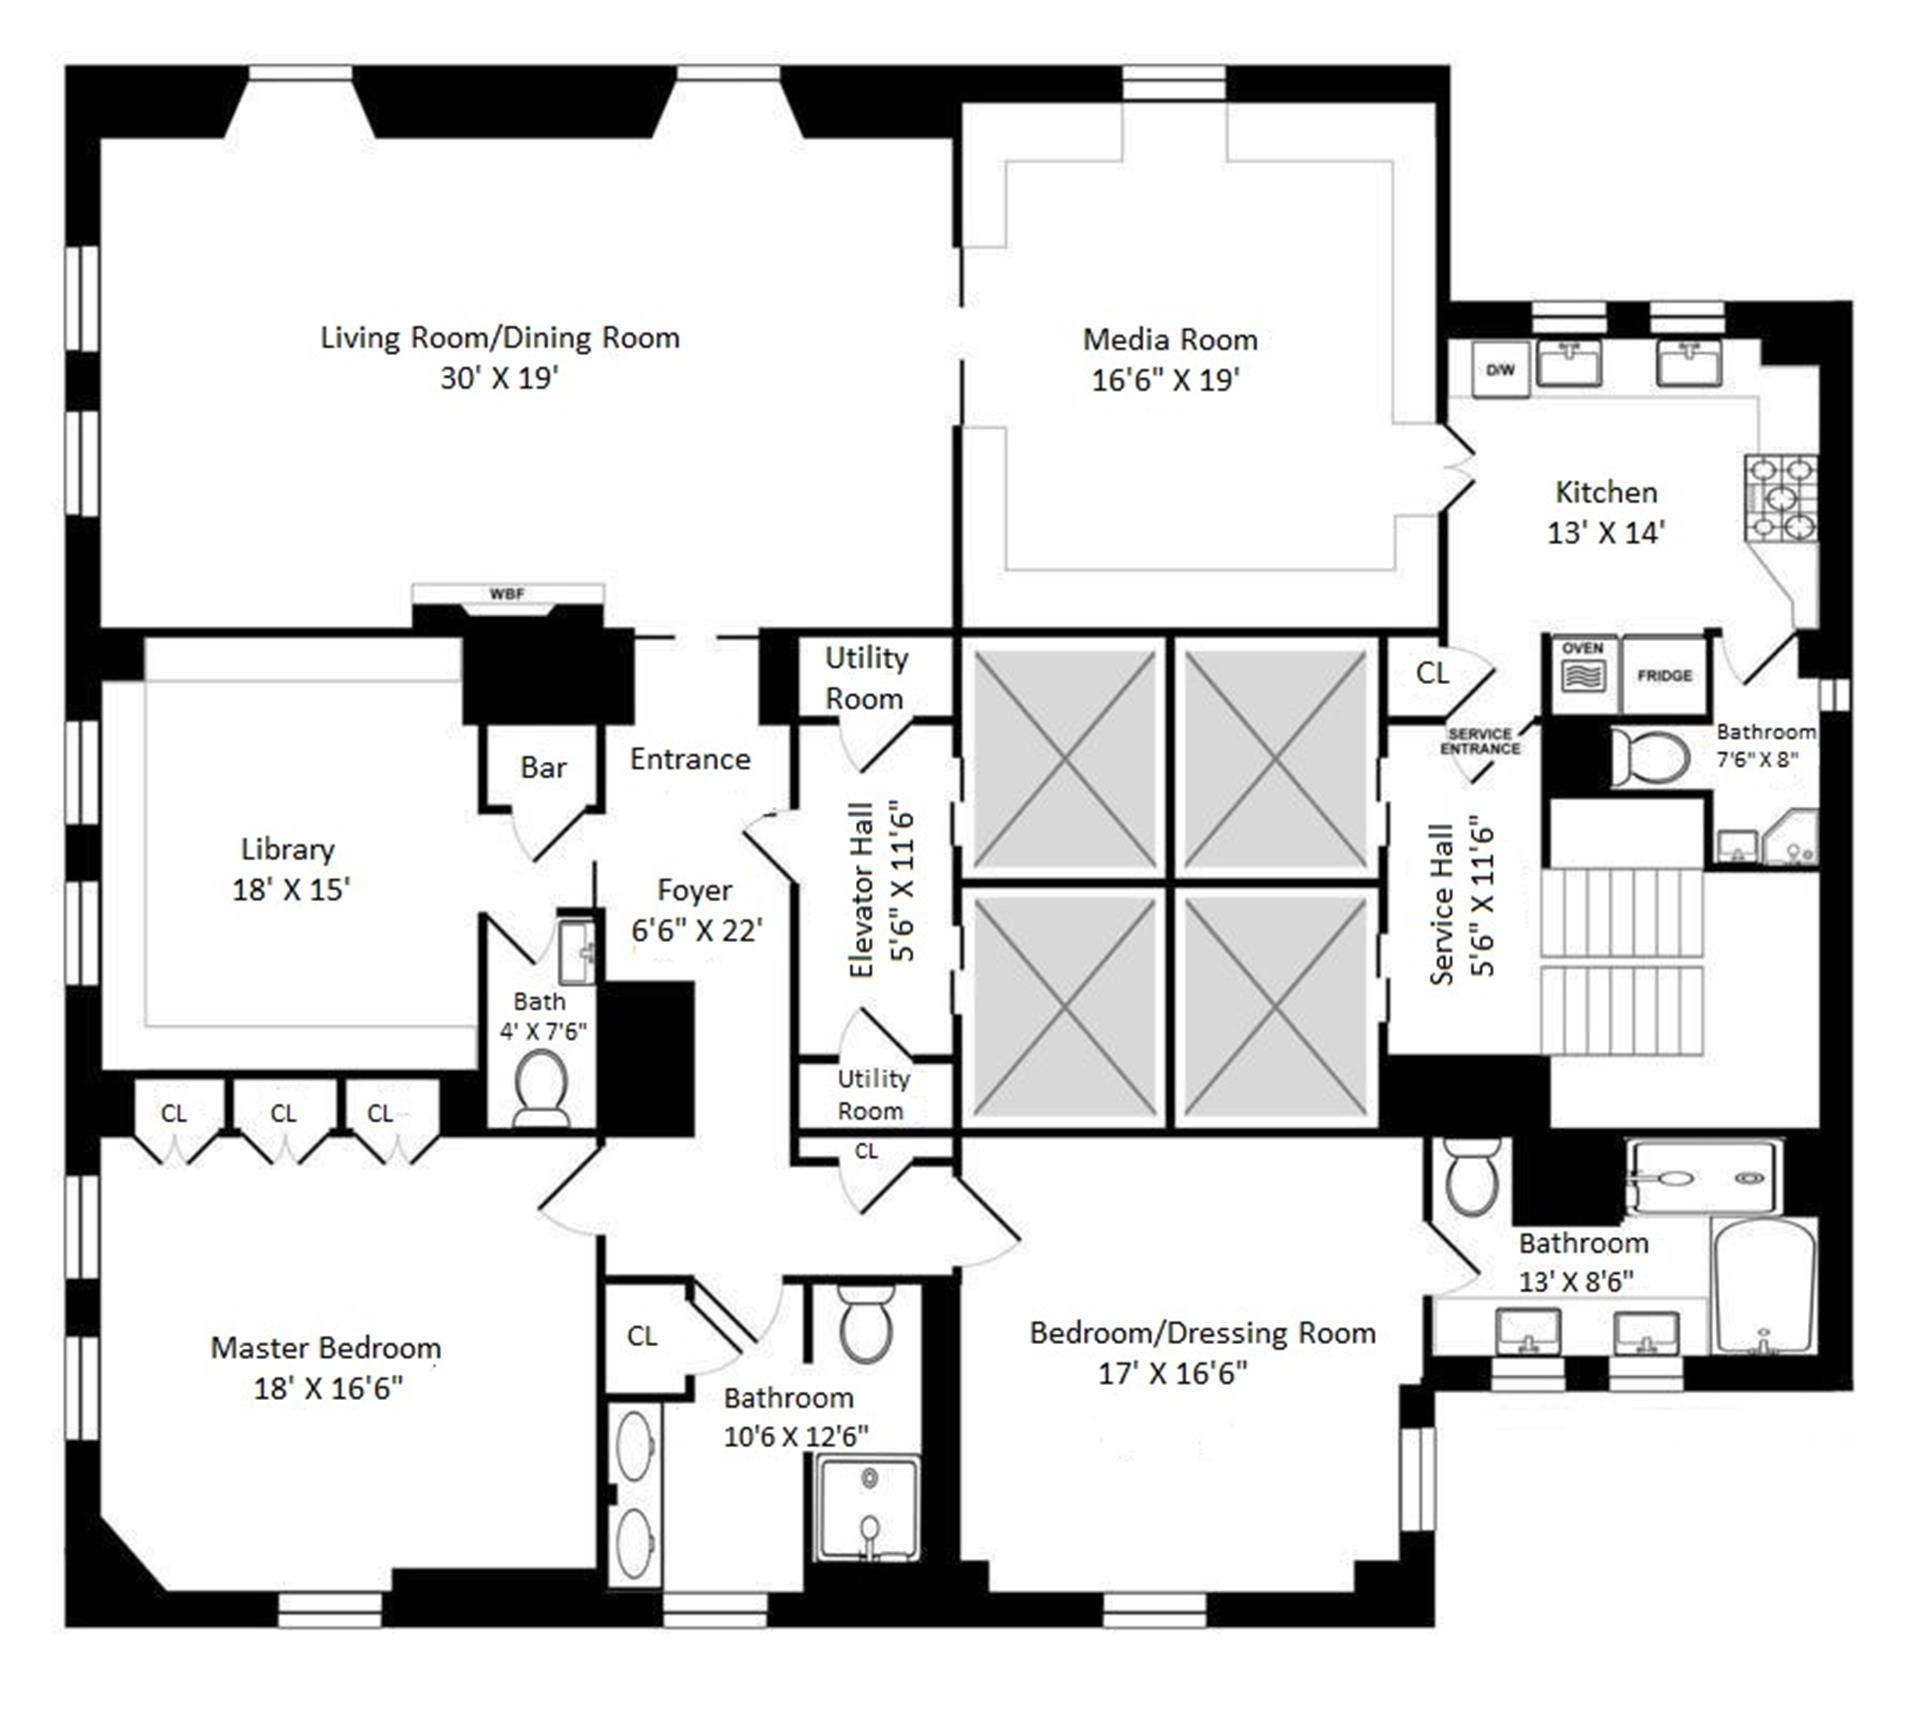 Floor plan of SHERRY NETHERLAND, 781 Fifth Avenue, 30T - Upper East Side, New York